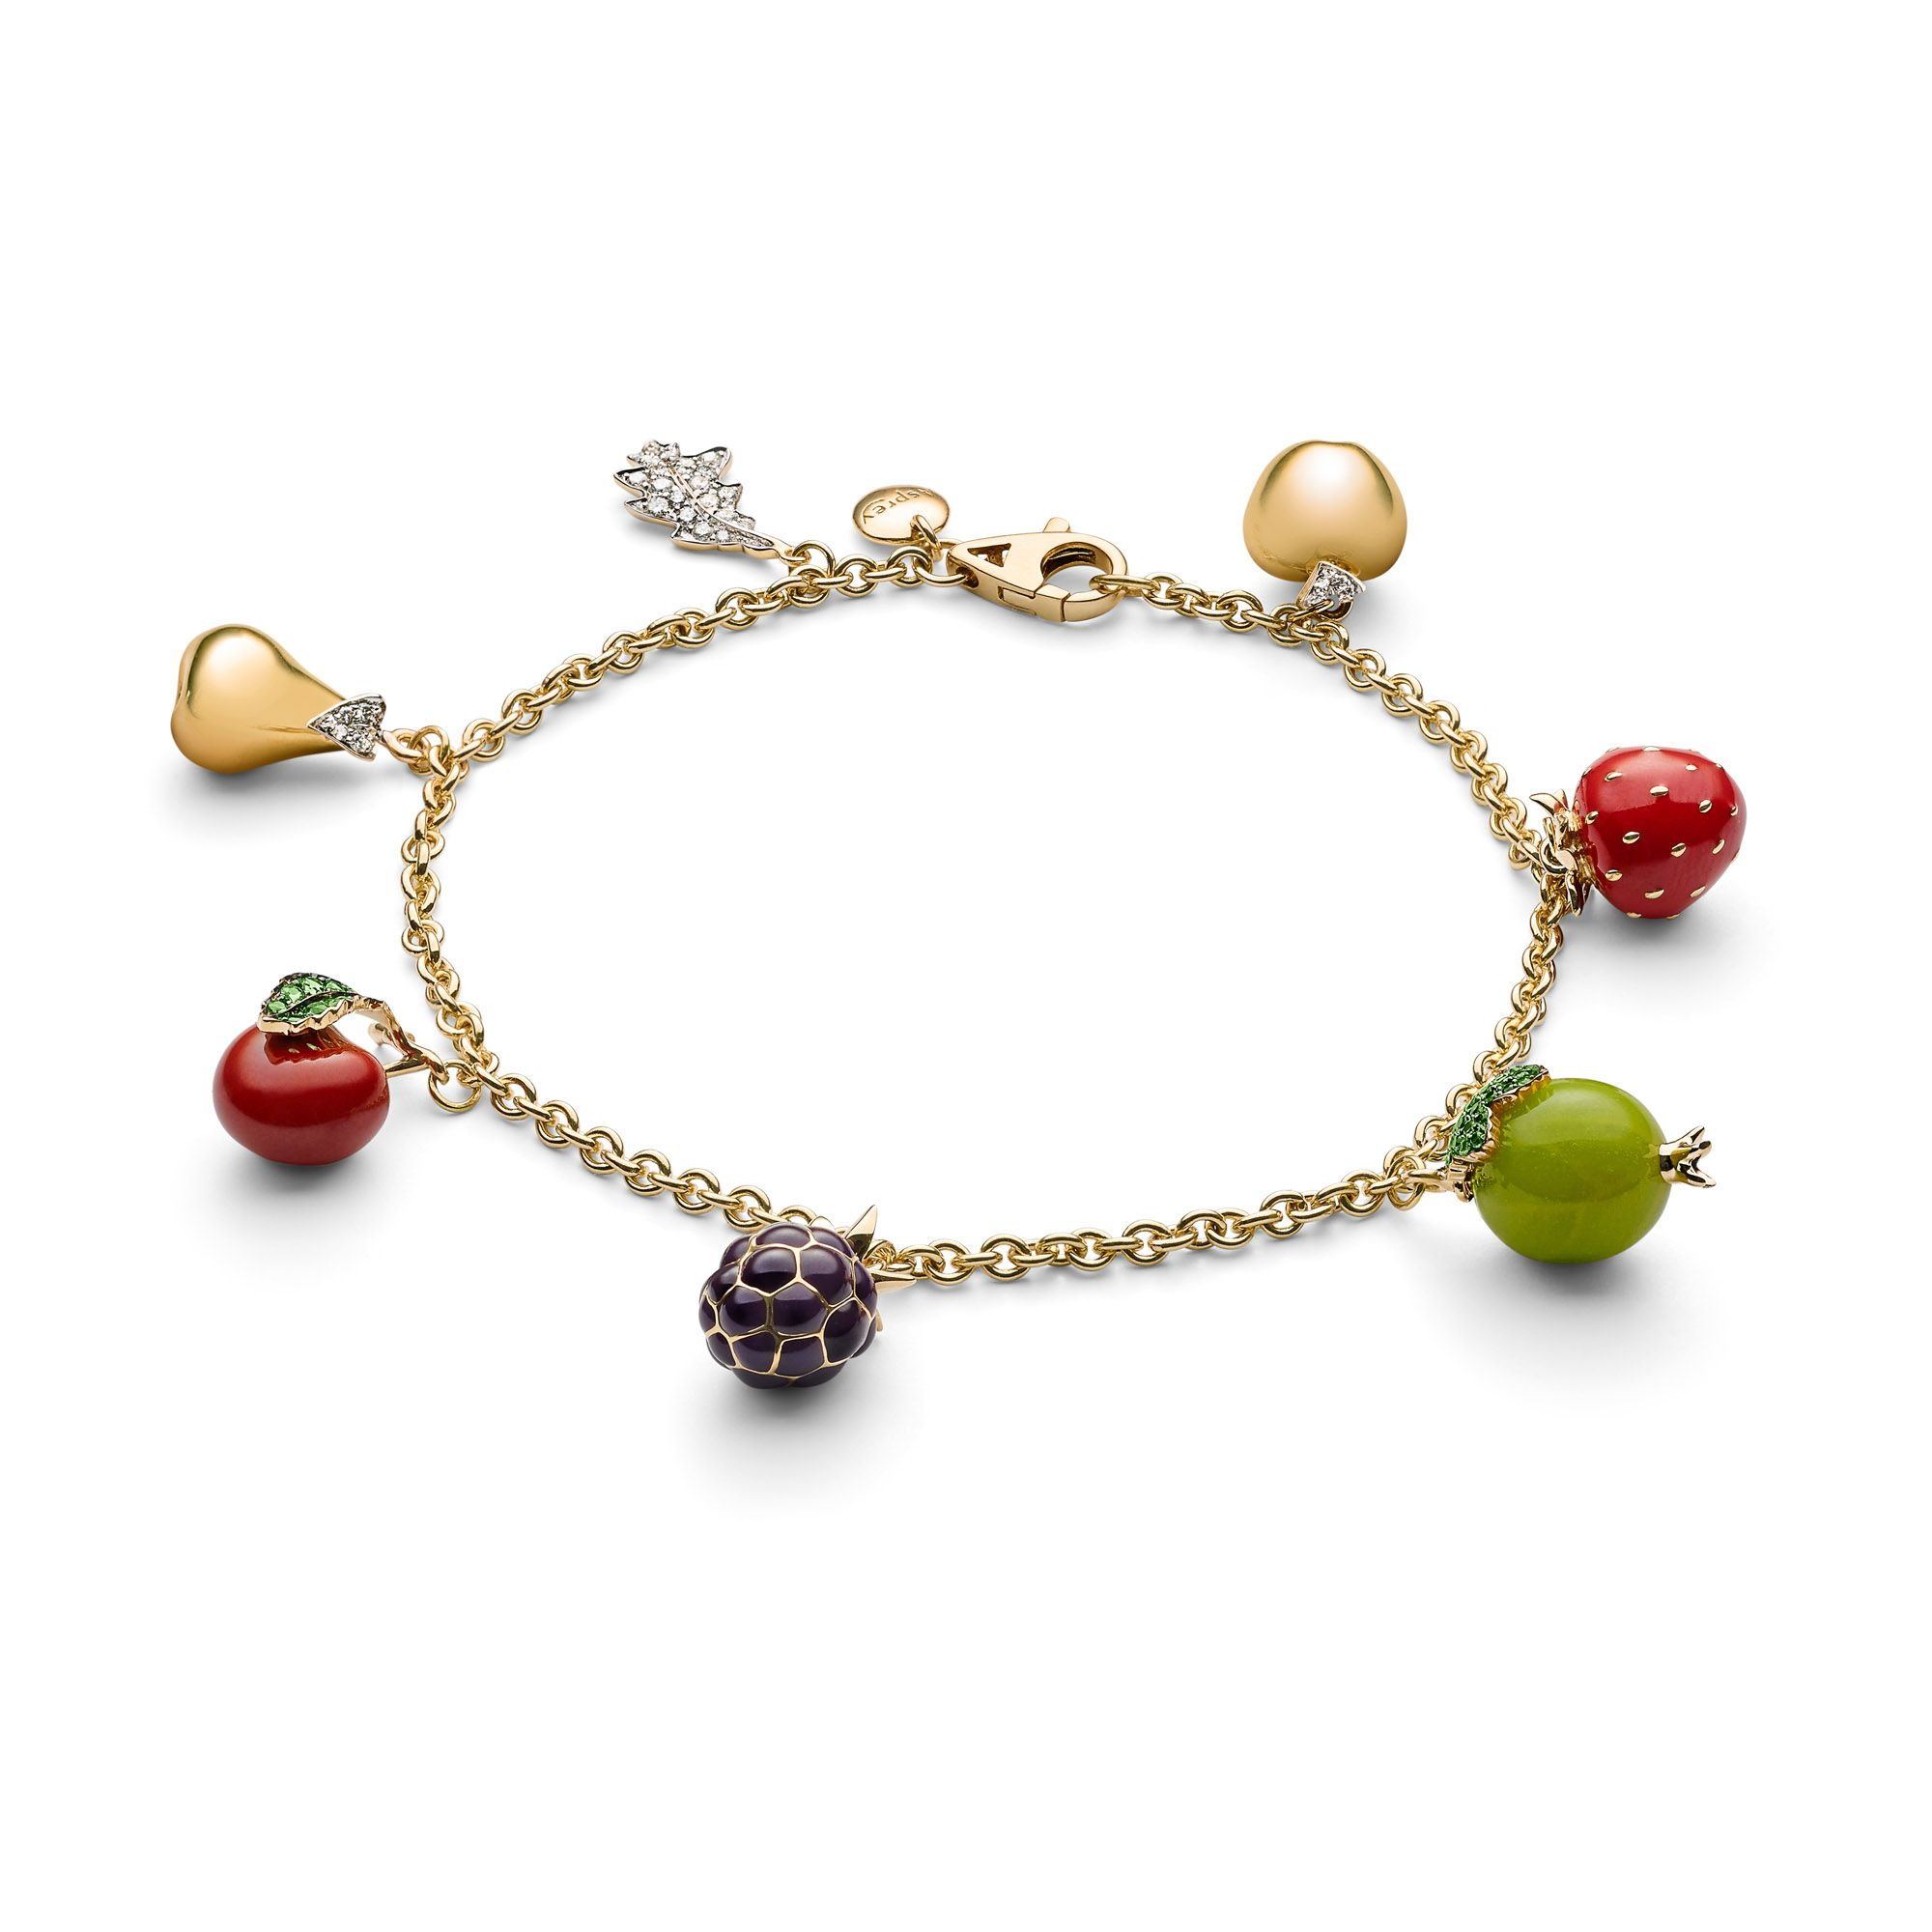 charm bracelets diamond melissa harris bracelet jewellery bangles collections tennis shopify